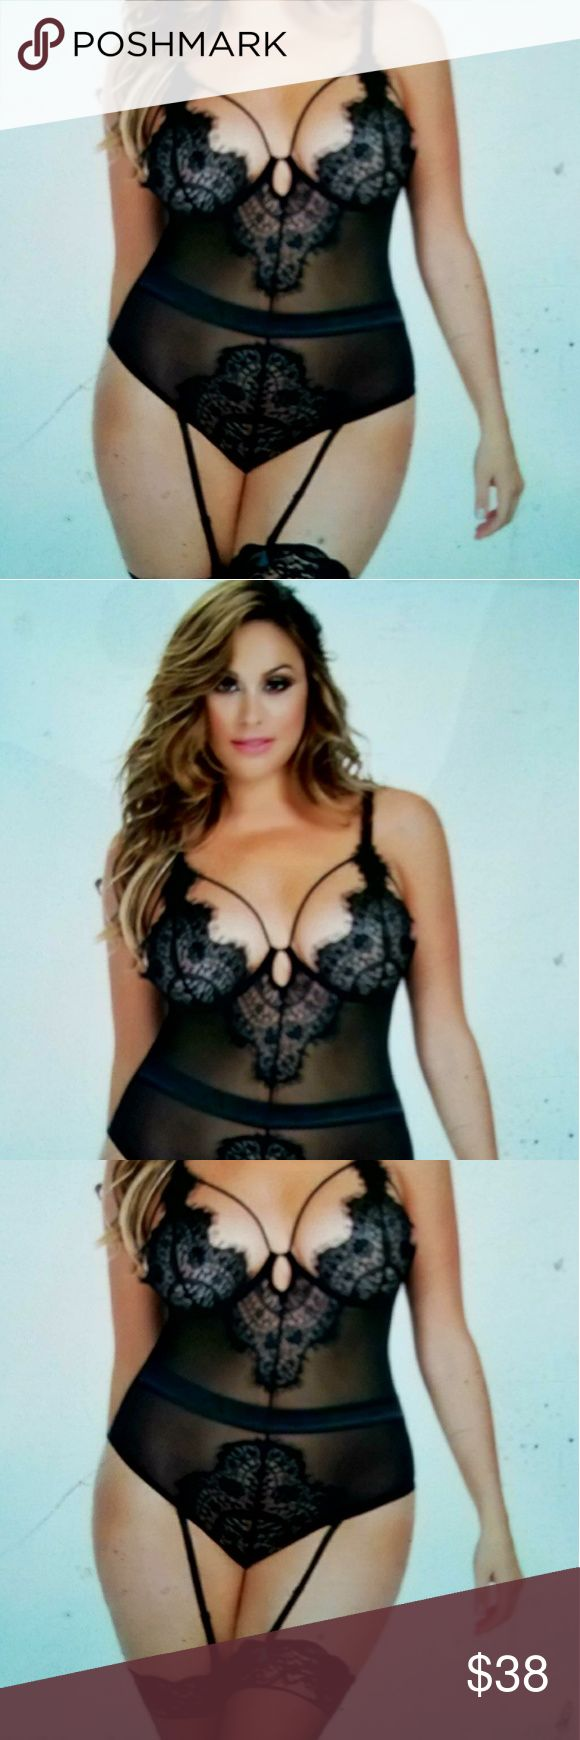 Plus-sized lingerie Sheer mesh caged eyelash lace teddy SEXY FITS SIZES 18/20 Intimates & Sleepwear